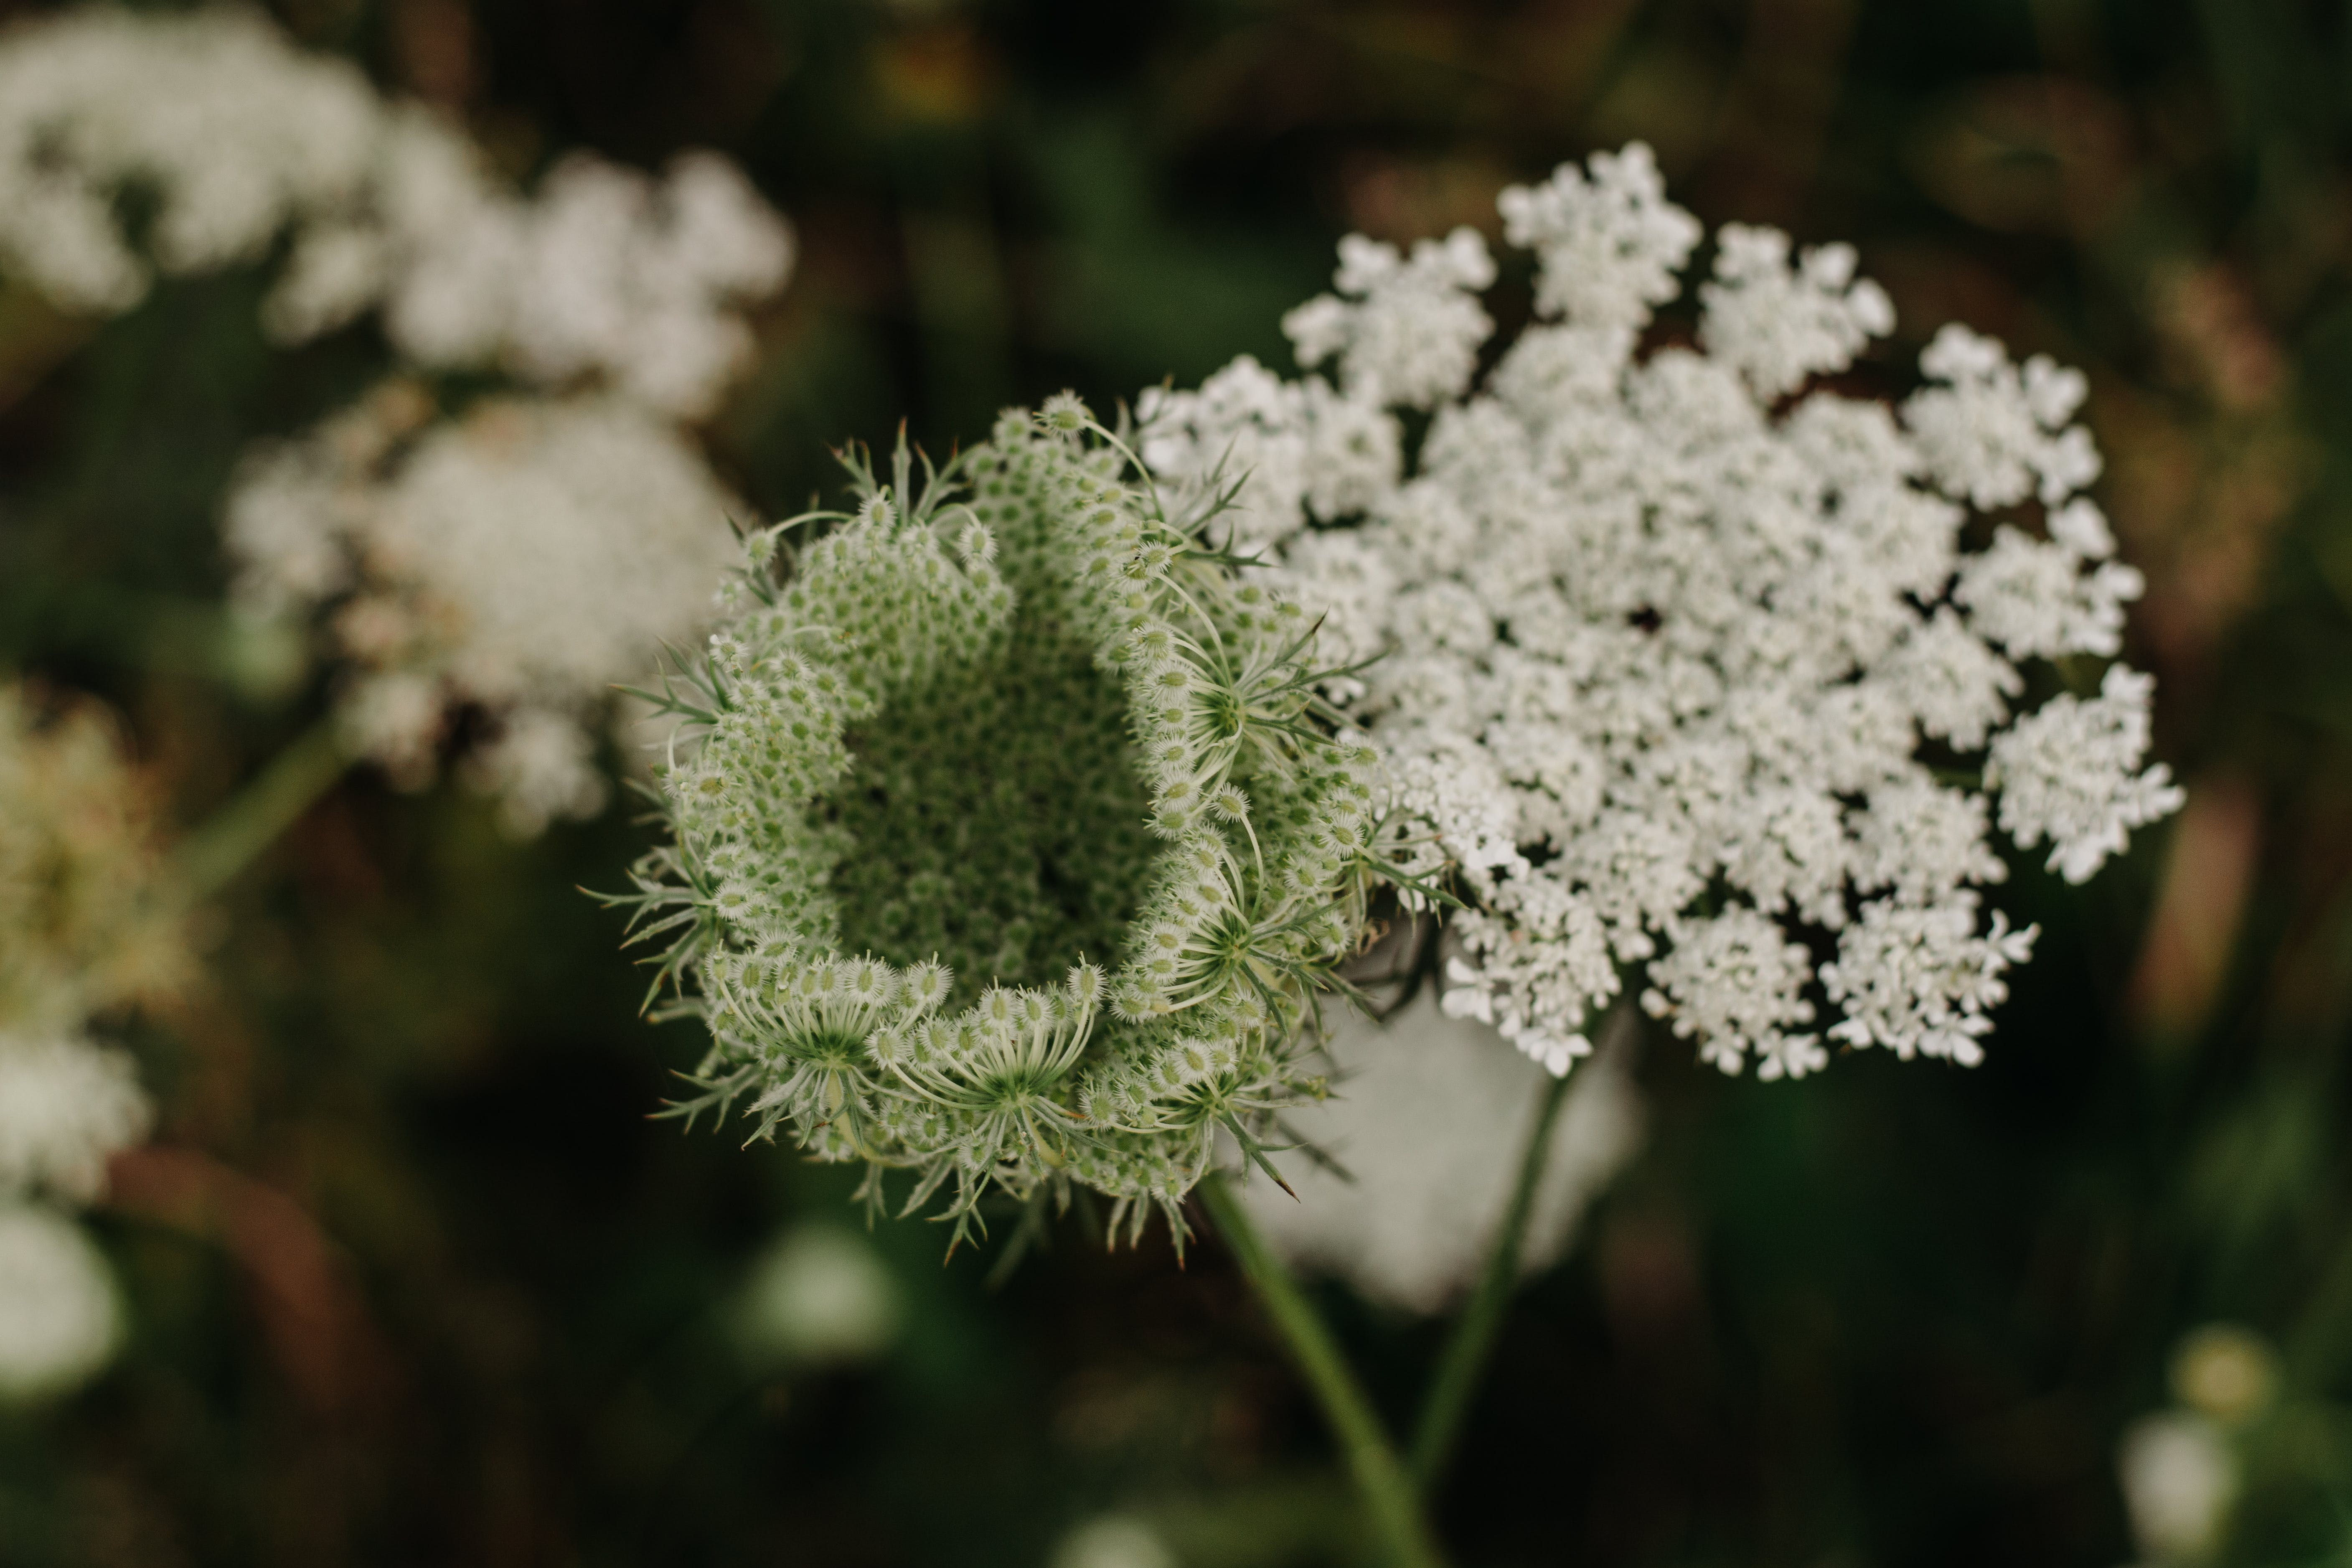 Closeup Photo of White Queen Anne's Lace Flower